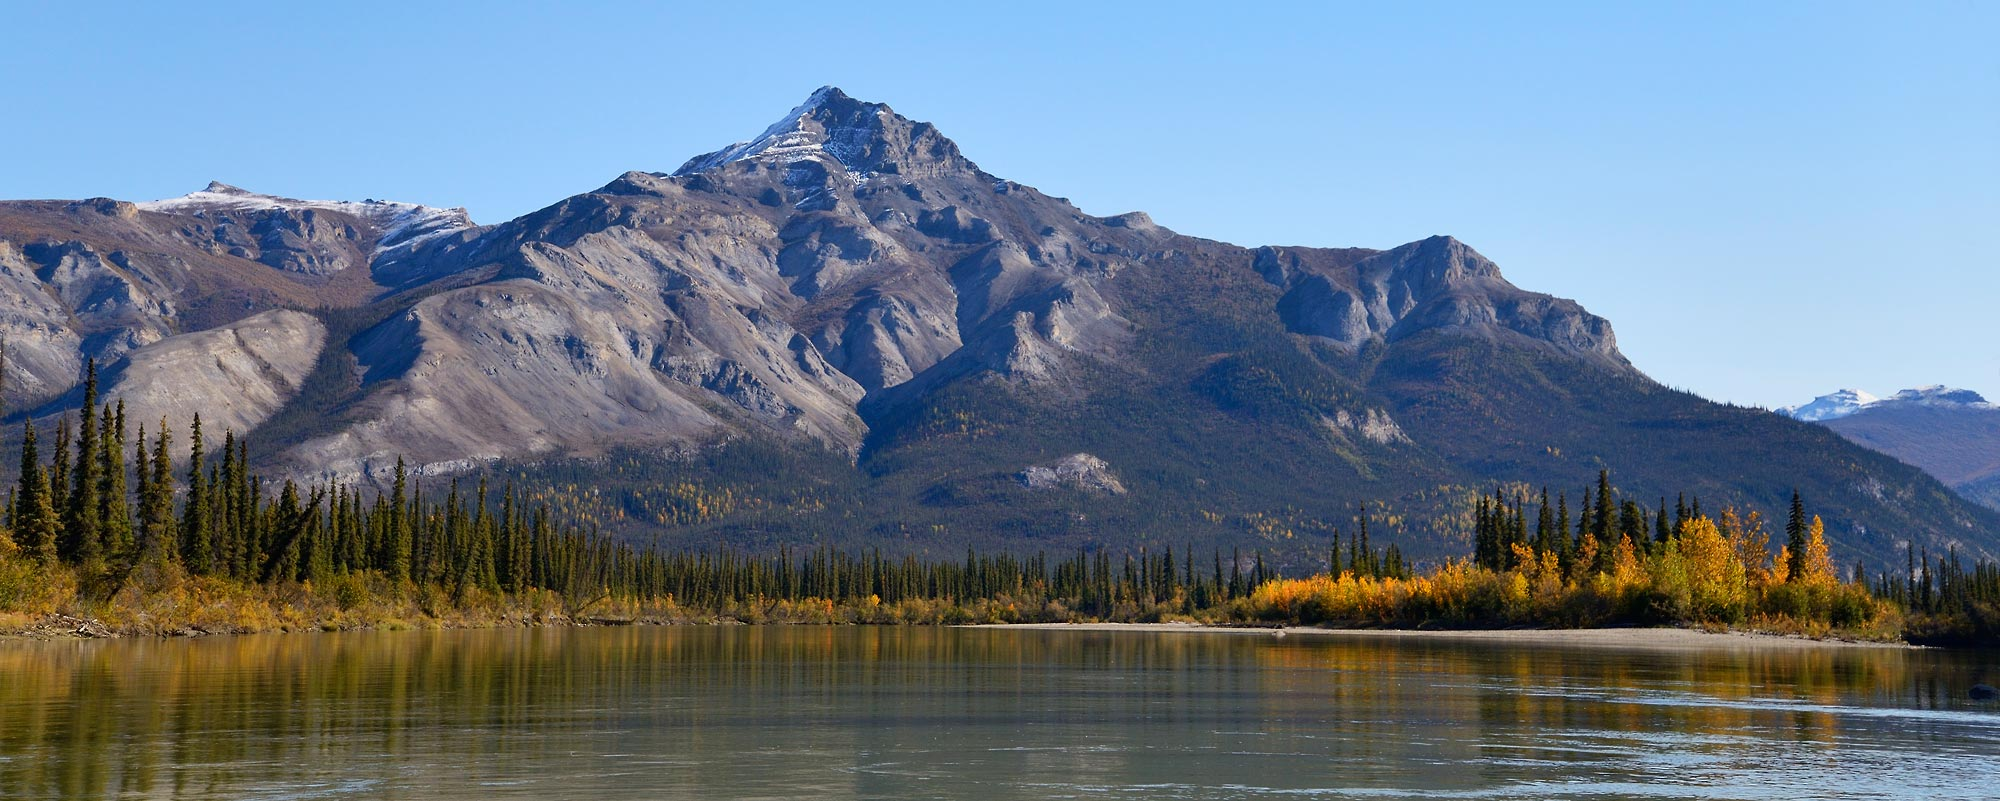 Featured image Expeditions Alaska Alatna River Gates of the Arctic National Park Alaska.